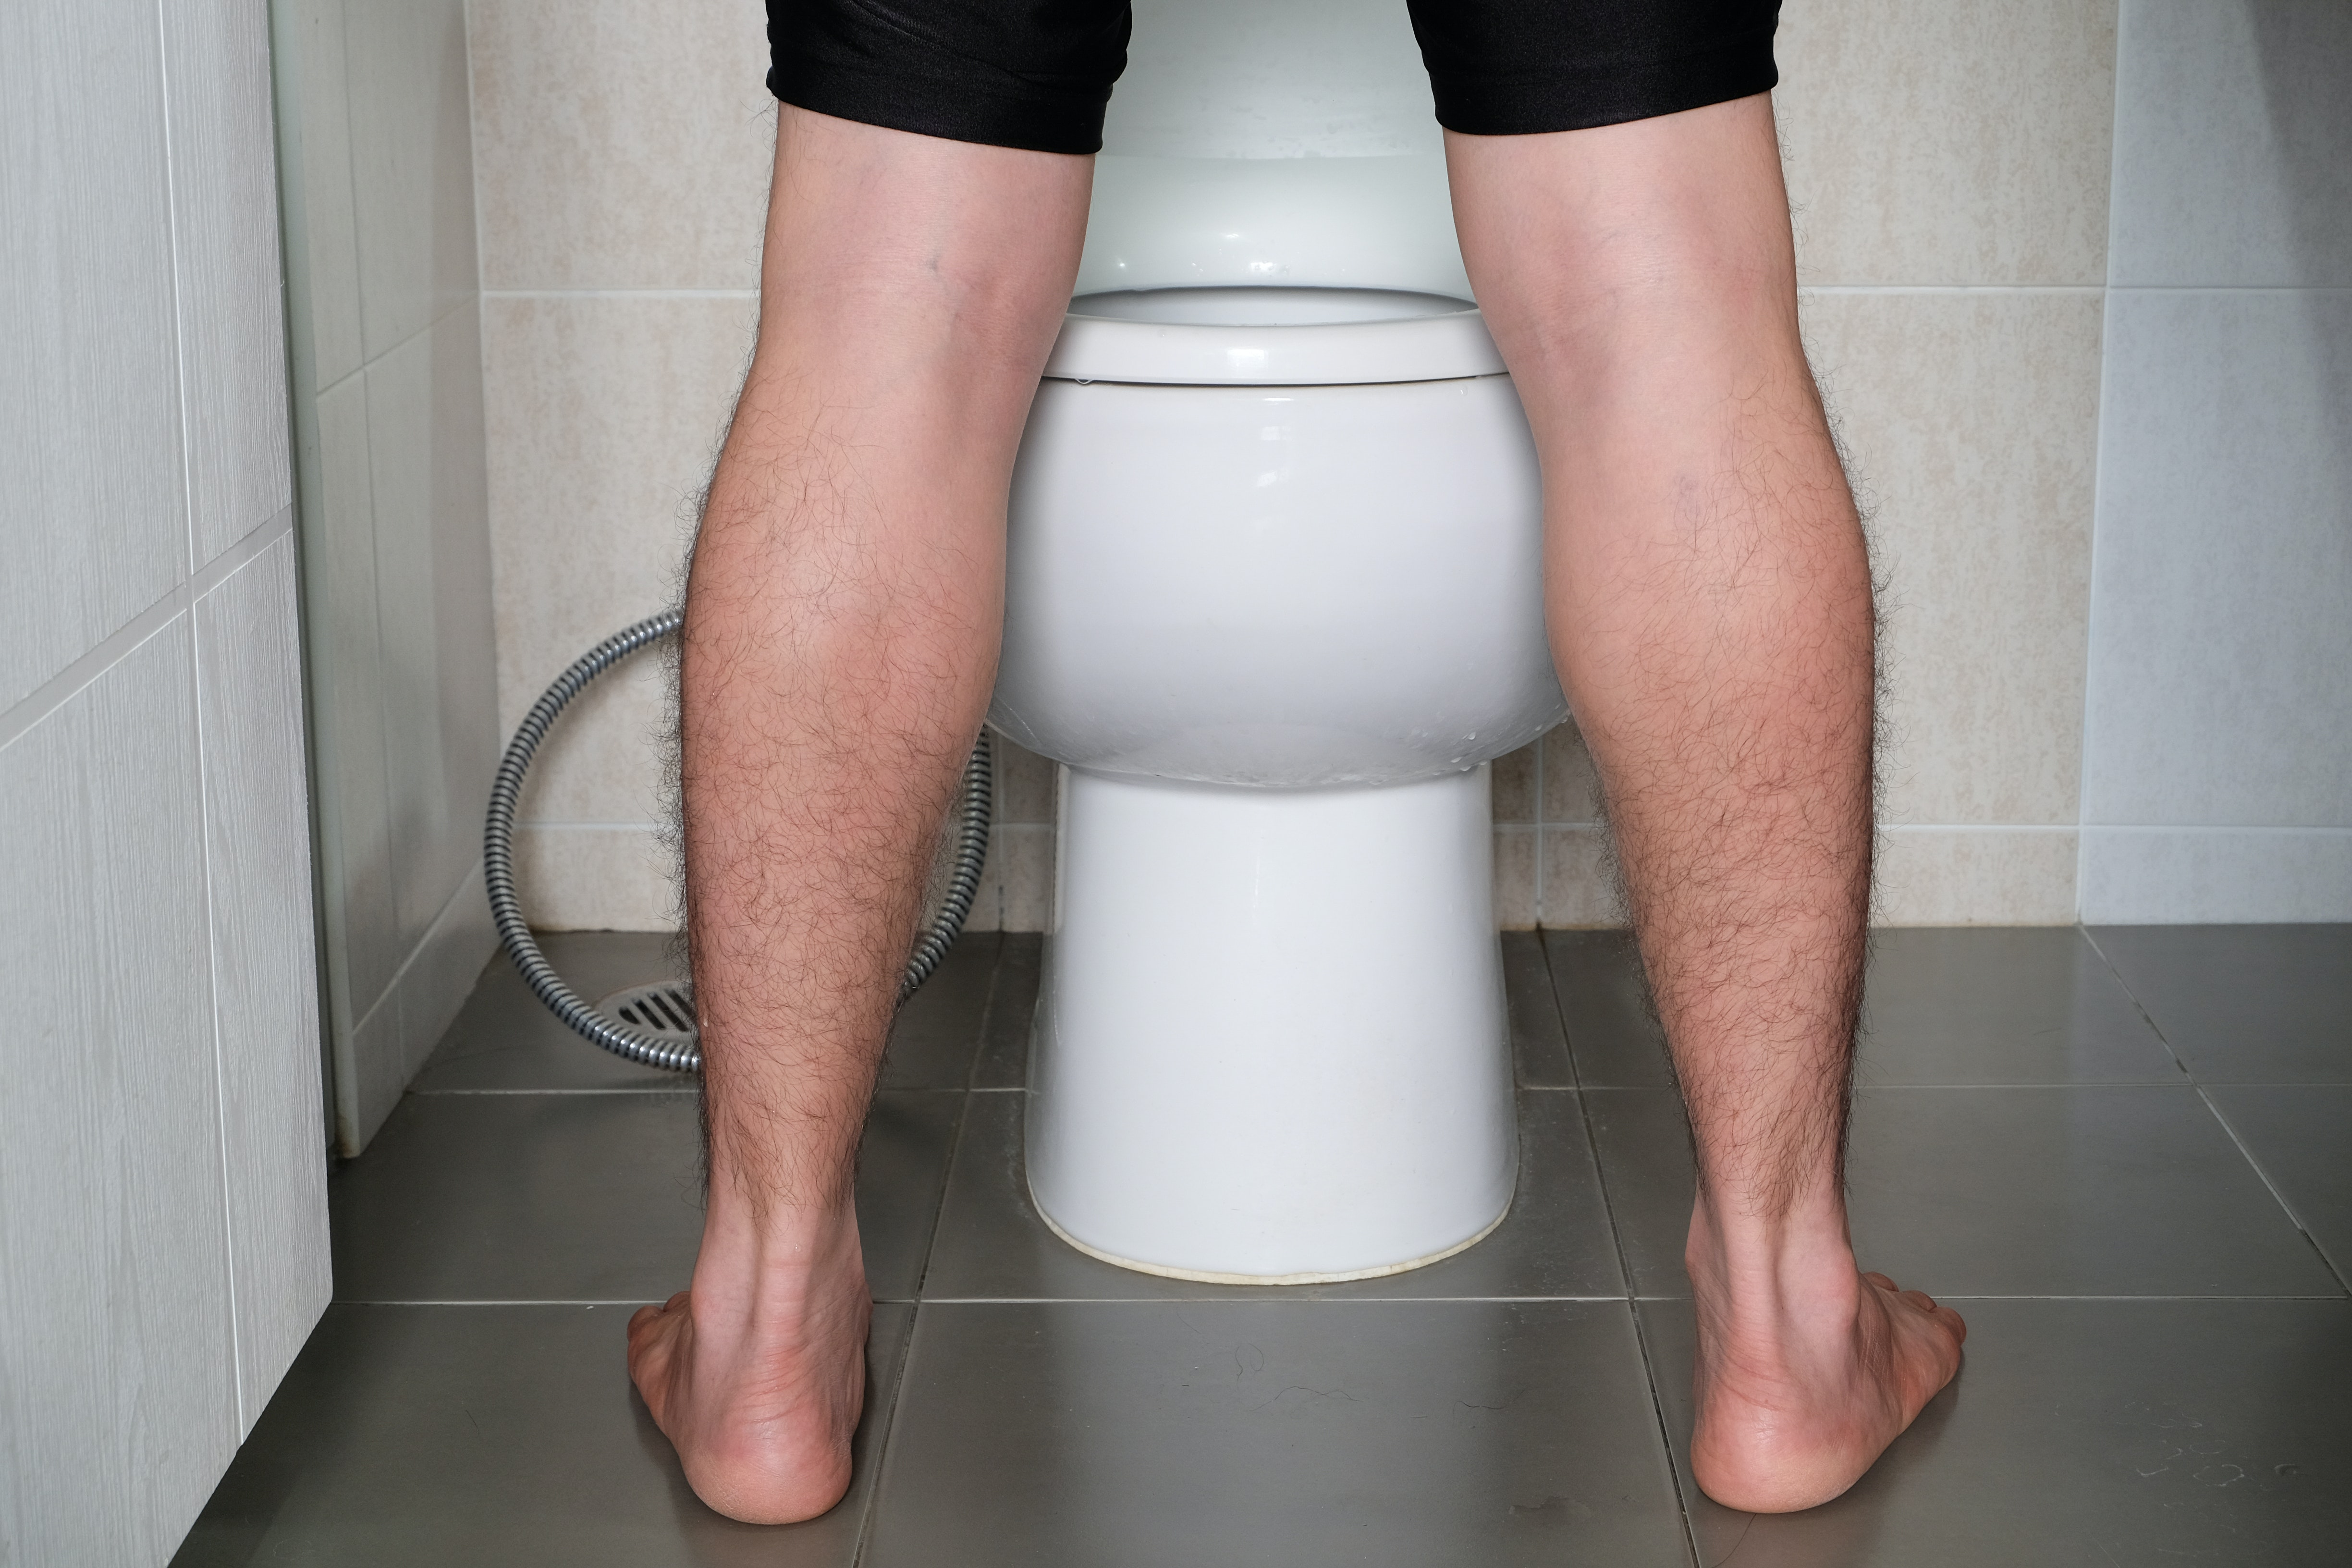 An image depicting a person suffering from frequent urination symptoms